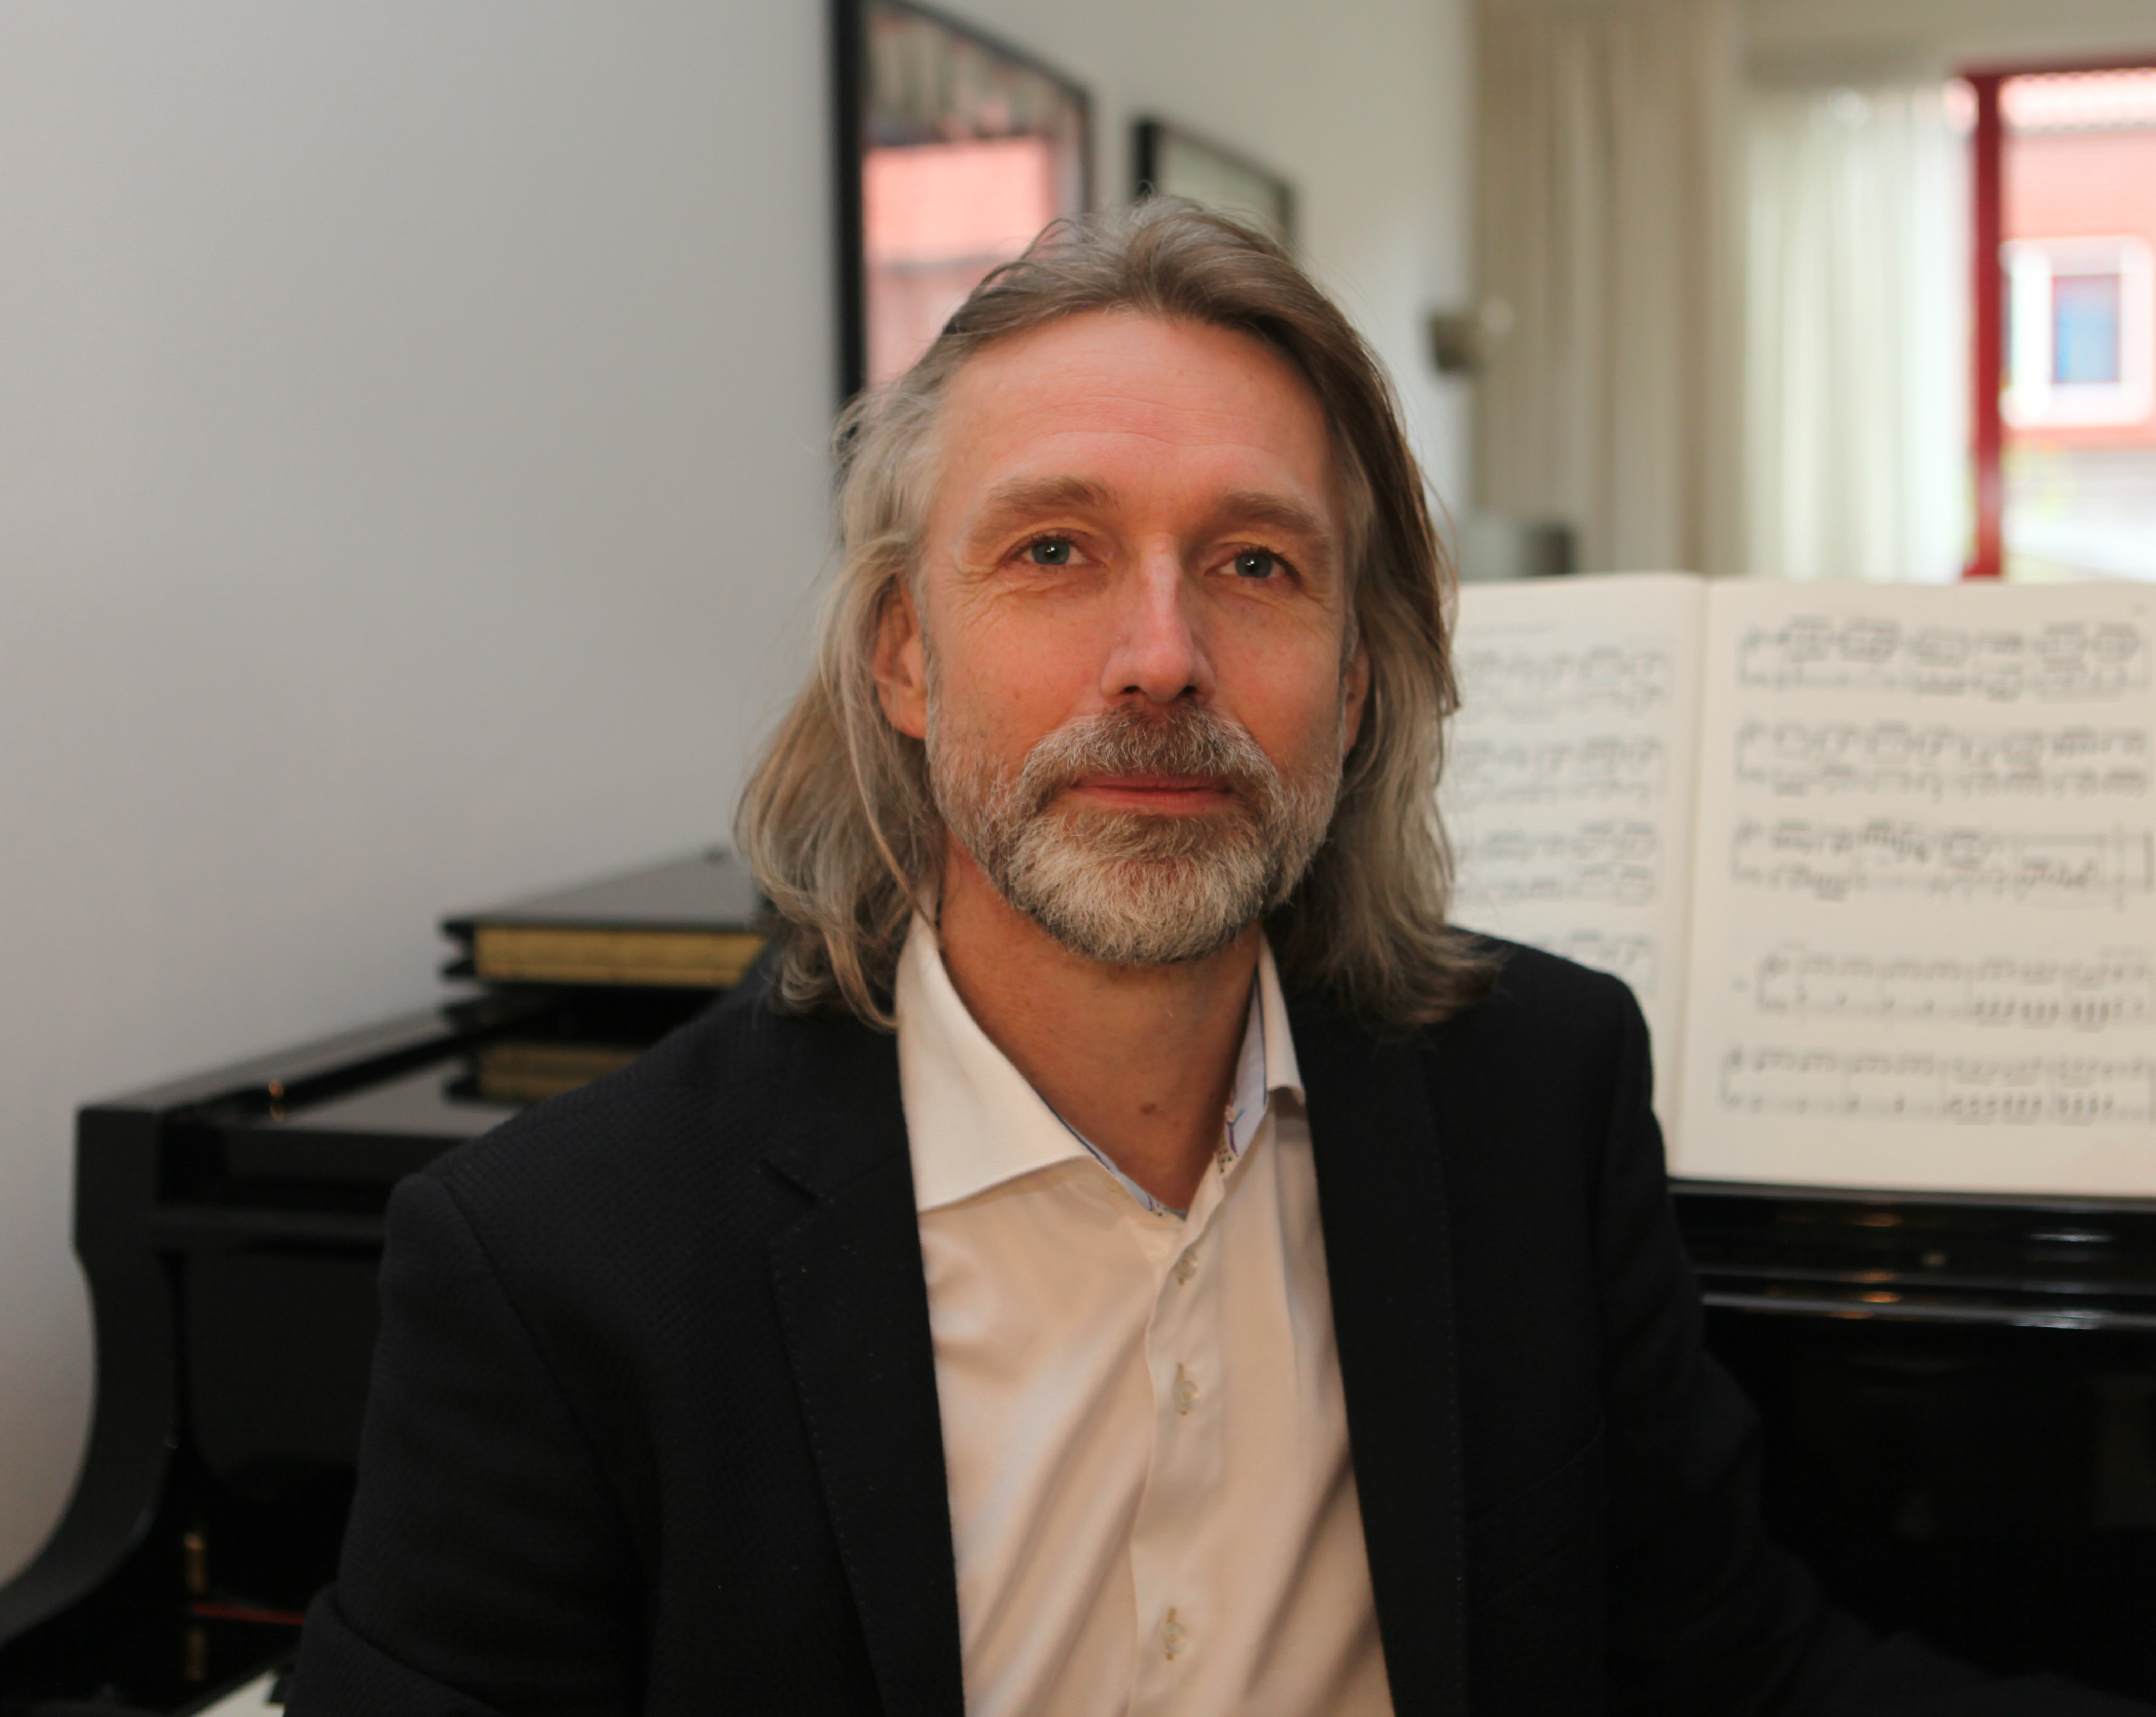 Gertjan Eldering is pianist, componist en docent.